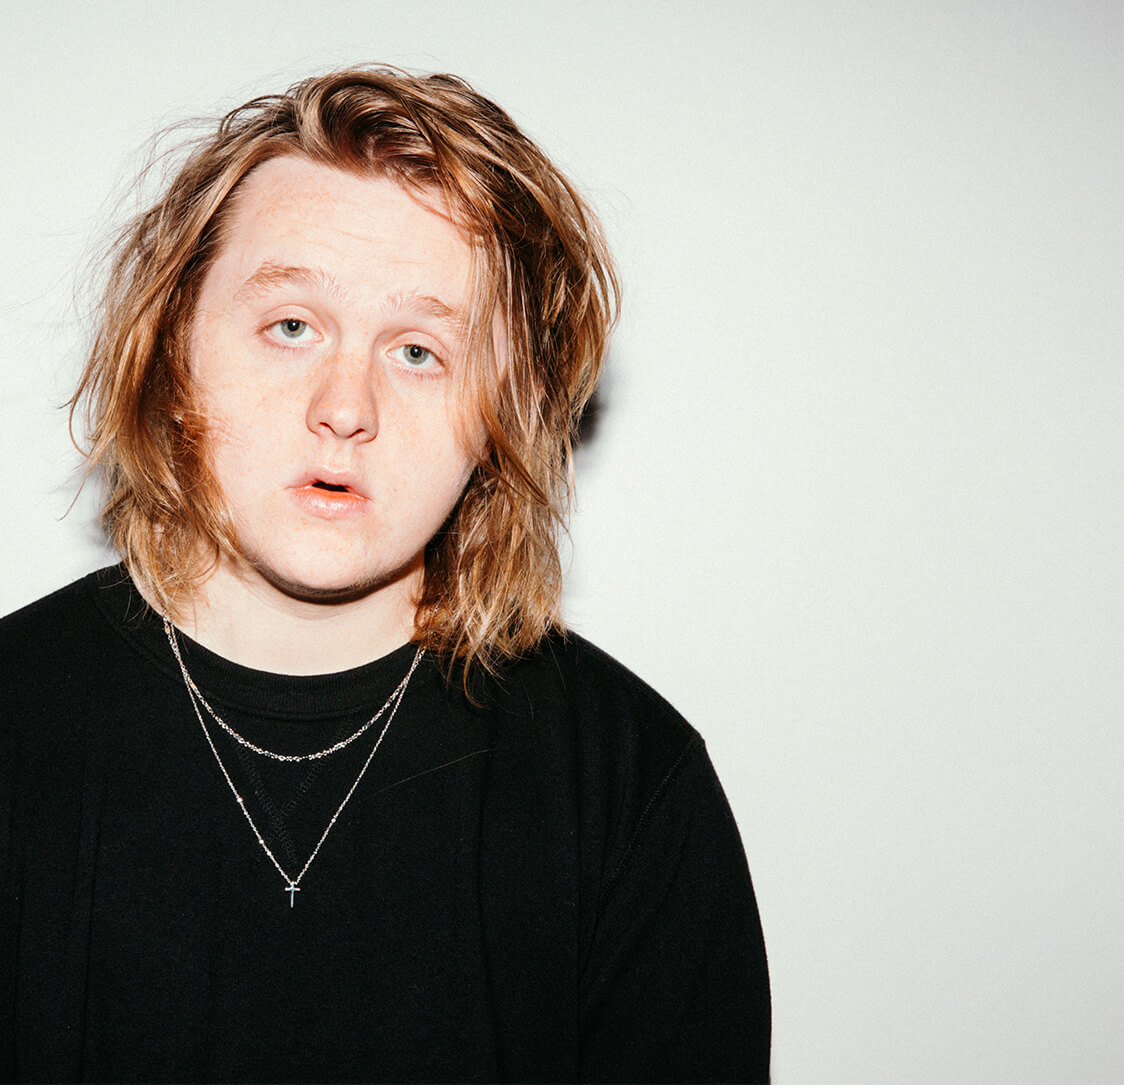 lewis capaldi - photo #24